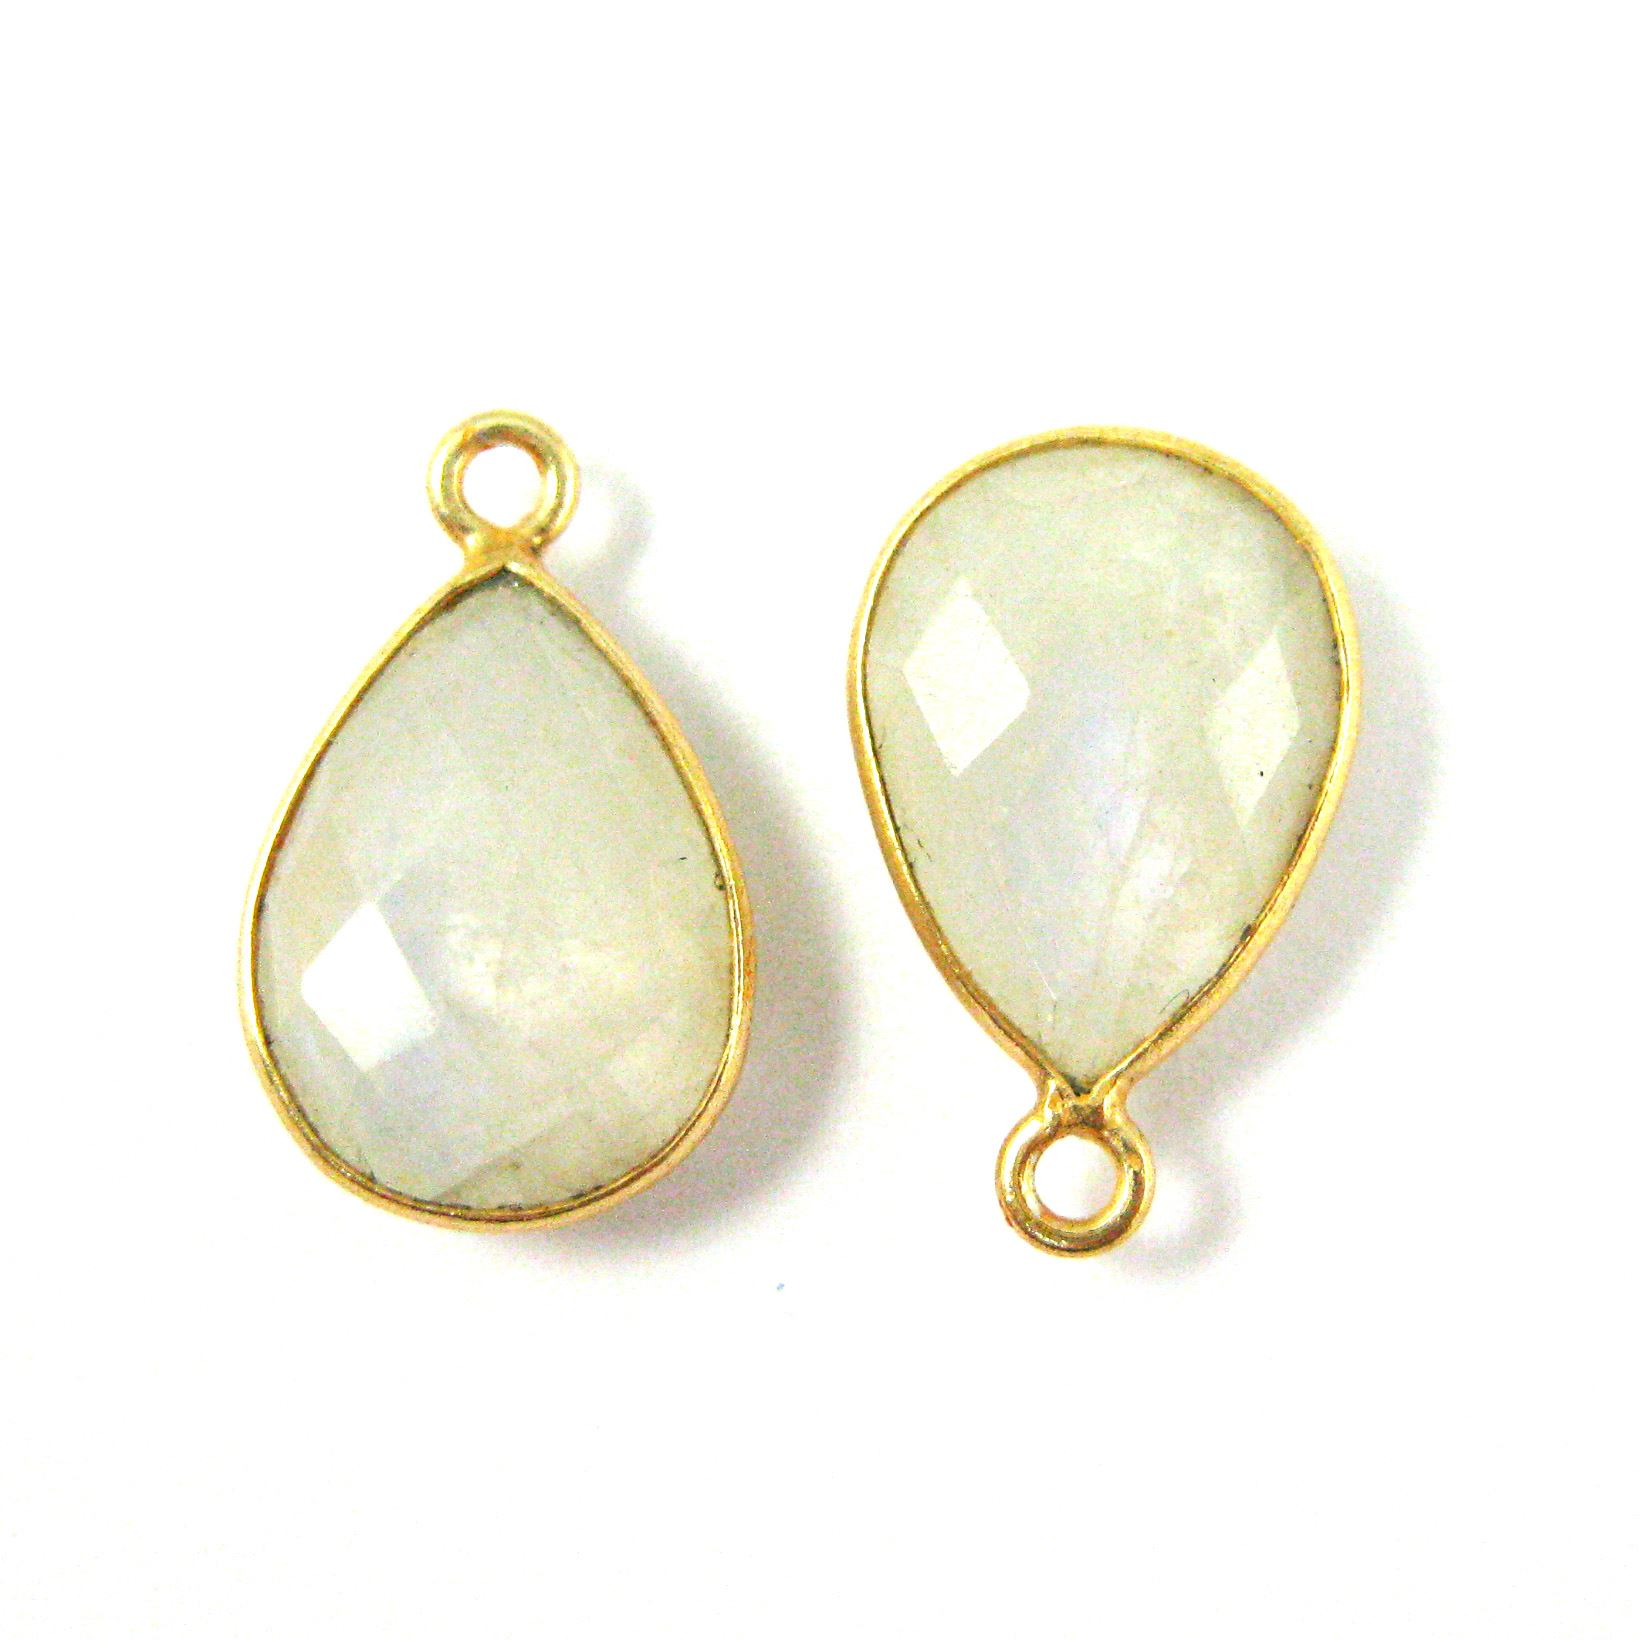 Bezel Gemstone Pendant - 10x14mm Faceted Small Teardop Shape - Moonstone  (Sold per 2 pieces)